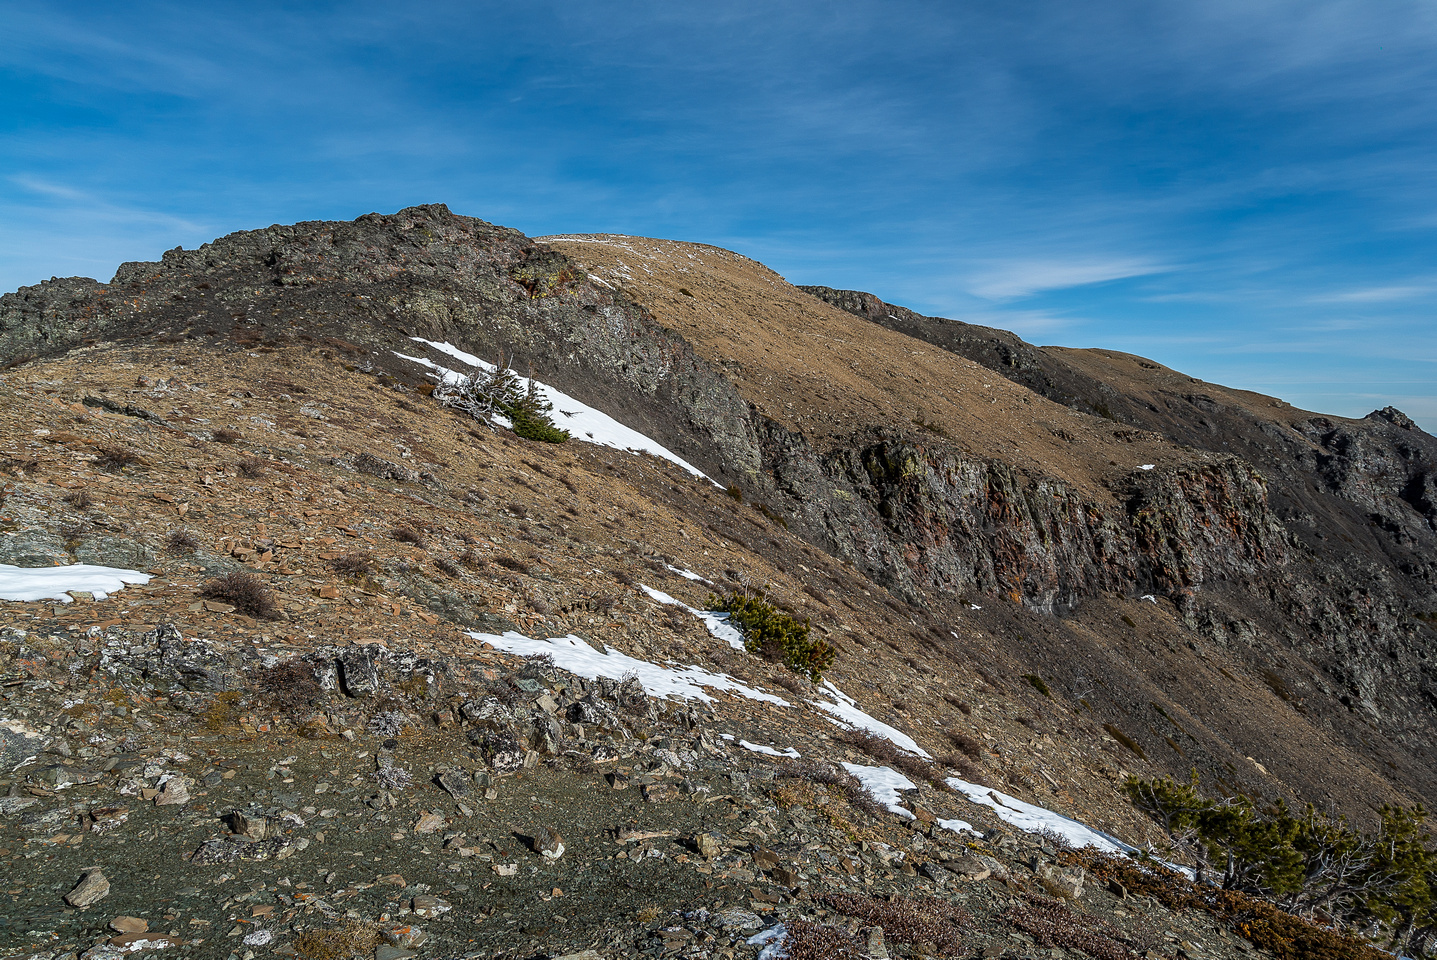 Looking back up the ridge towards Table Top.